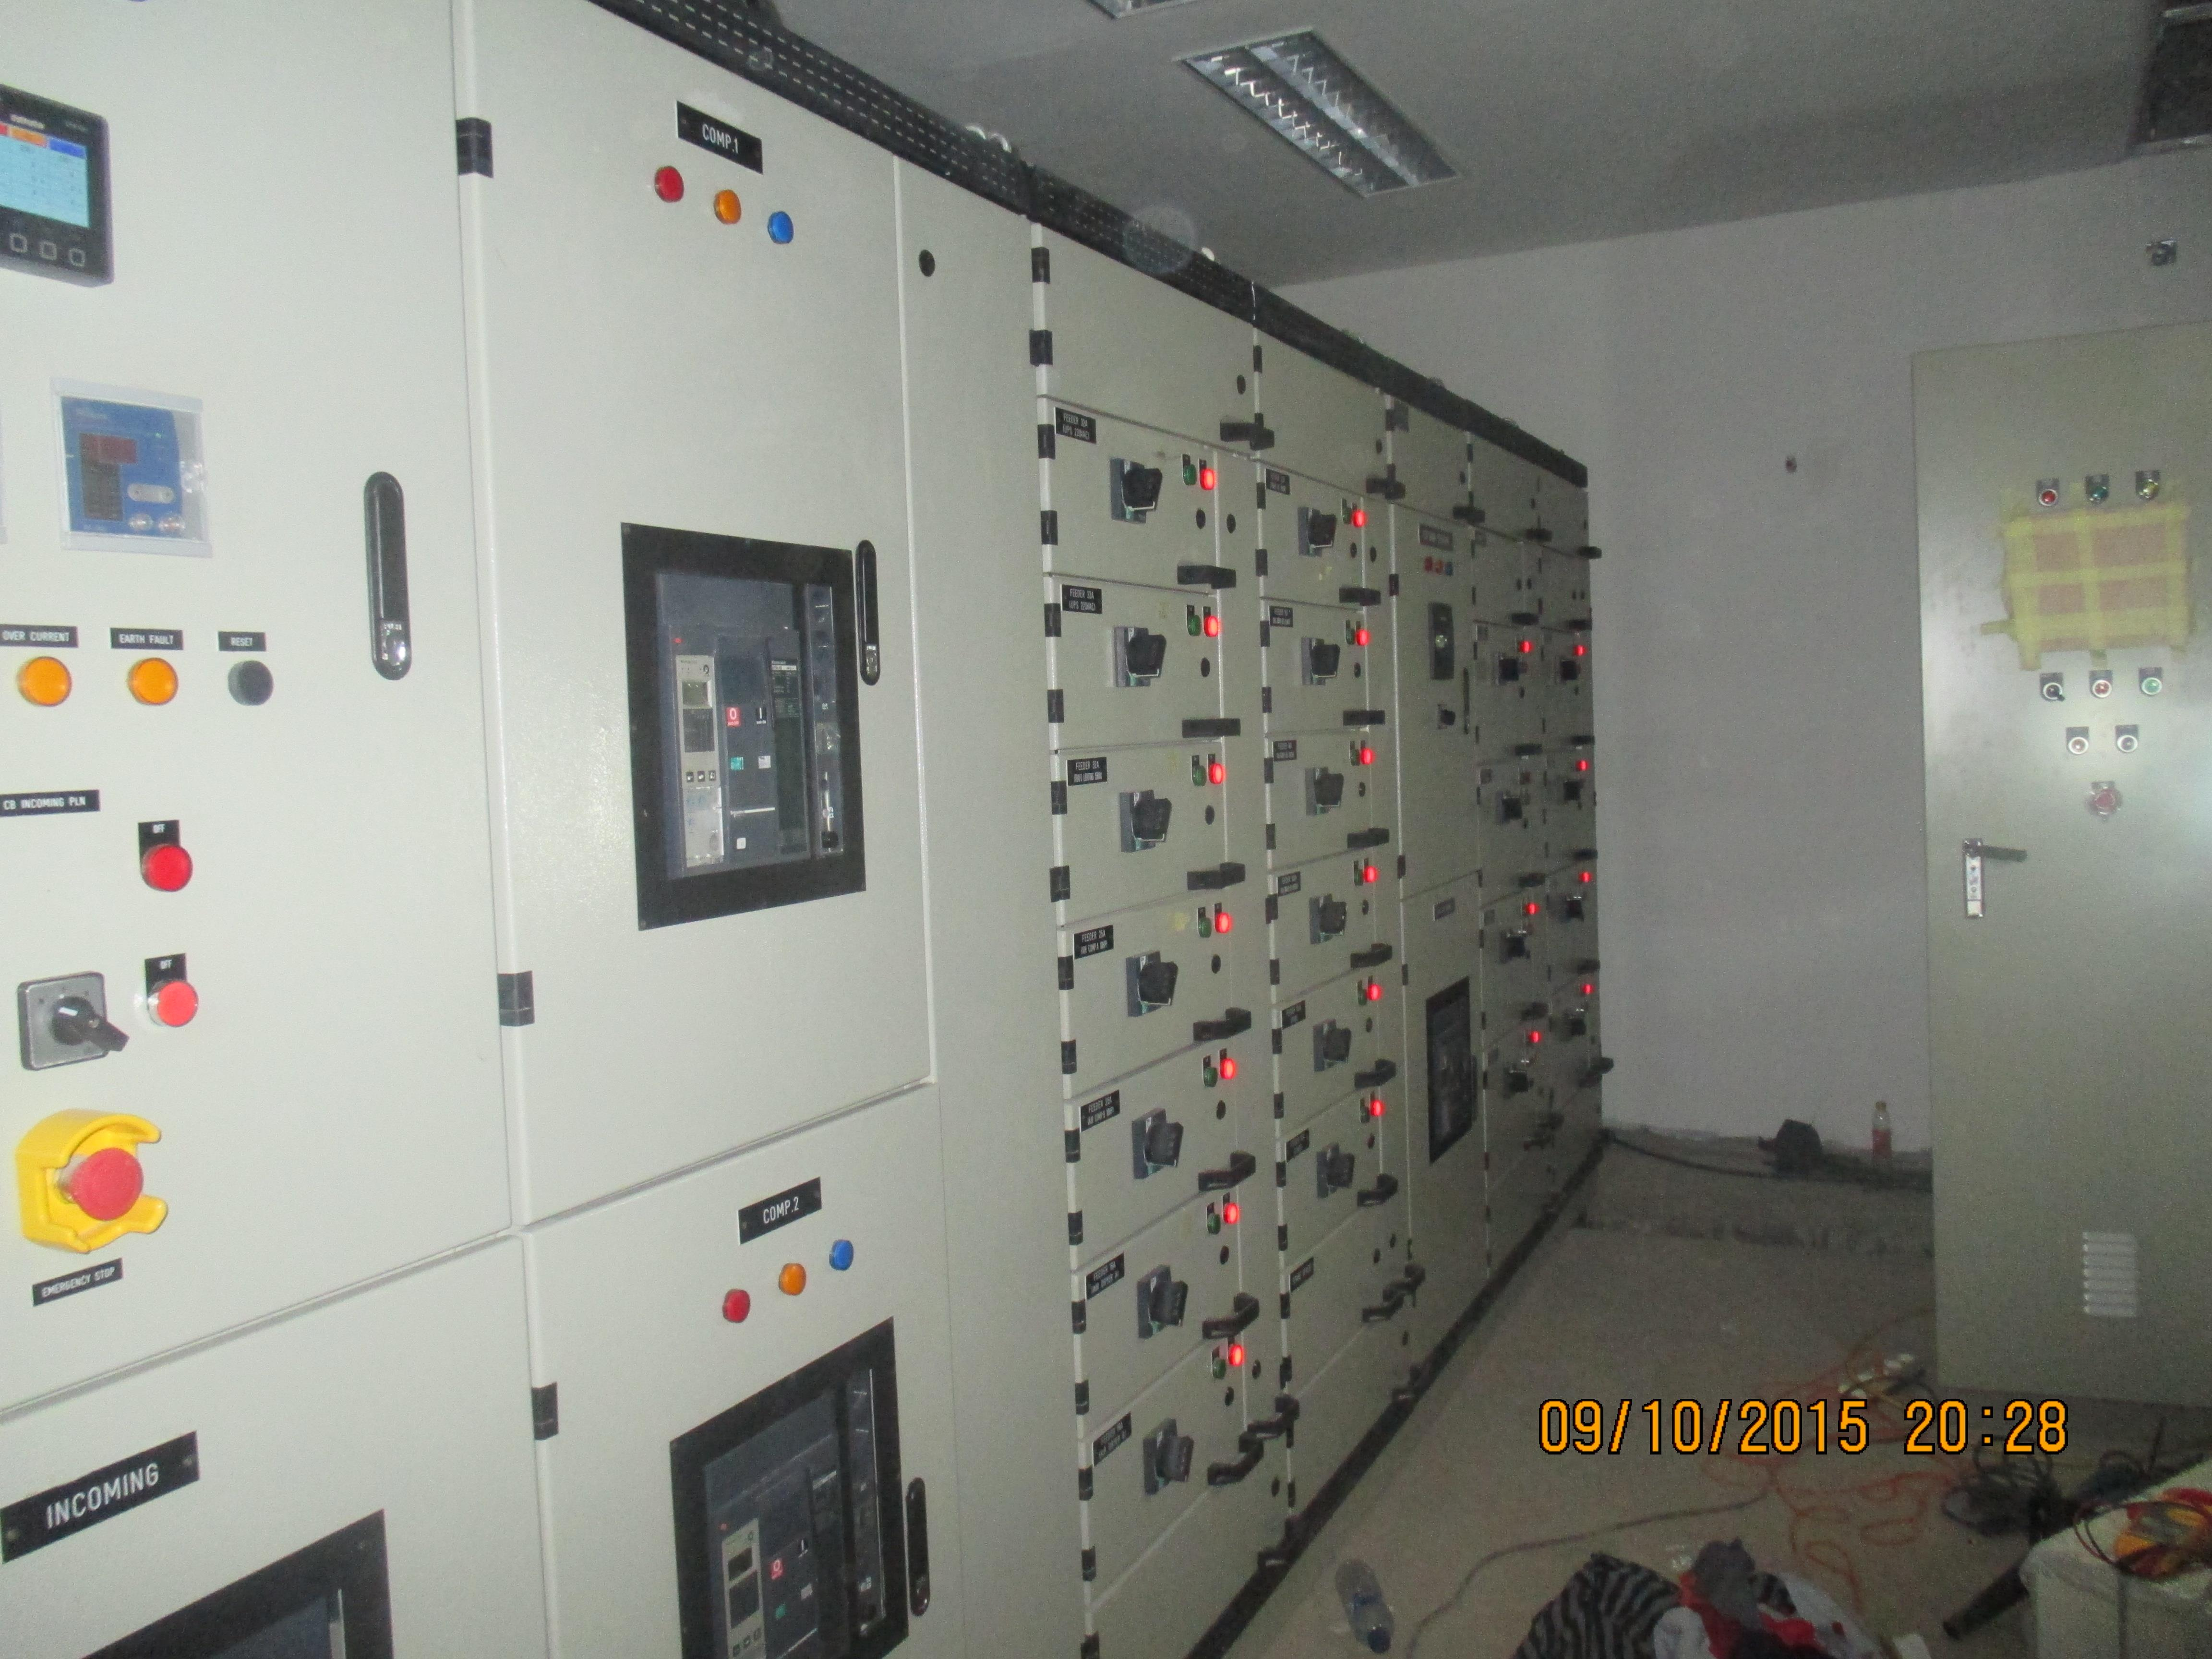 Magnificent electrical panel room photos wiring diagram ideas sell panel lvmdp from indonesia by pt voltaindo perkasacheap price cheapraybanclubmaster Gallery